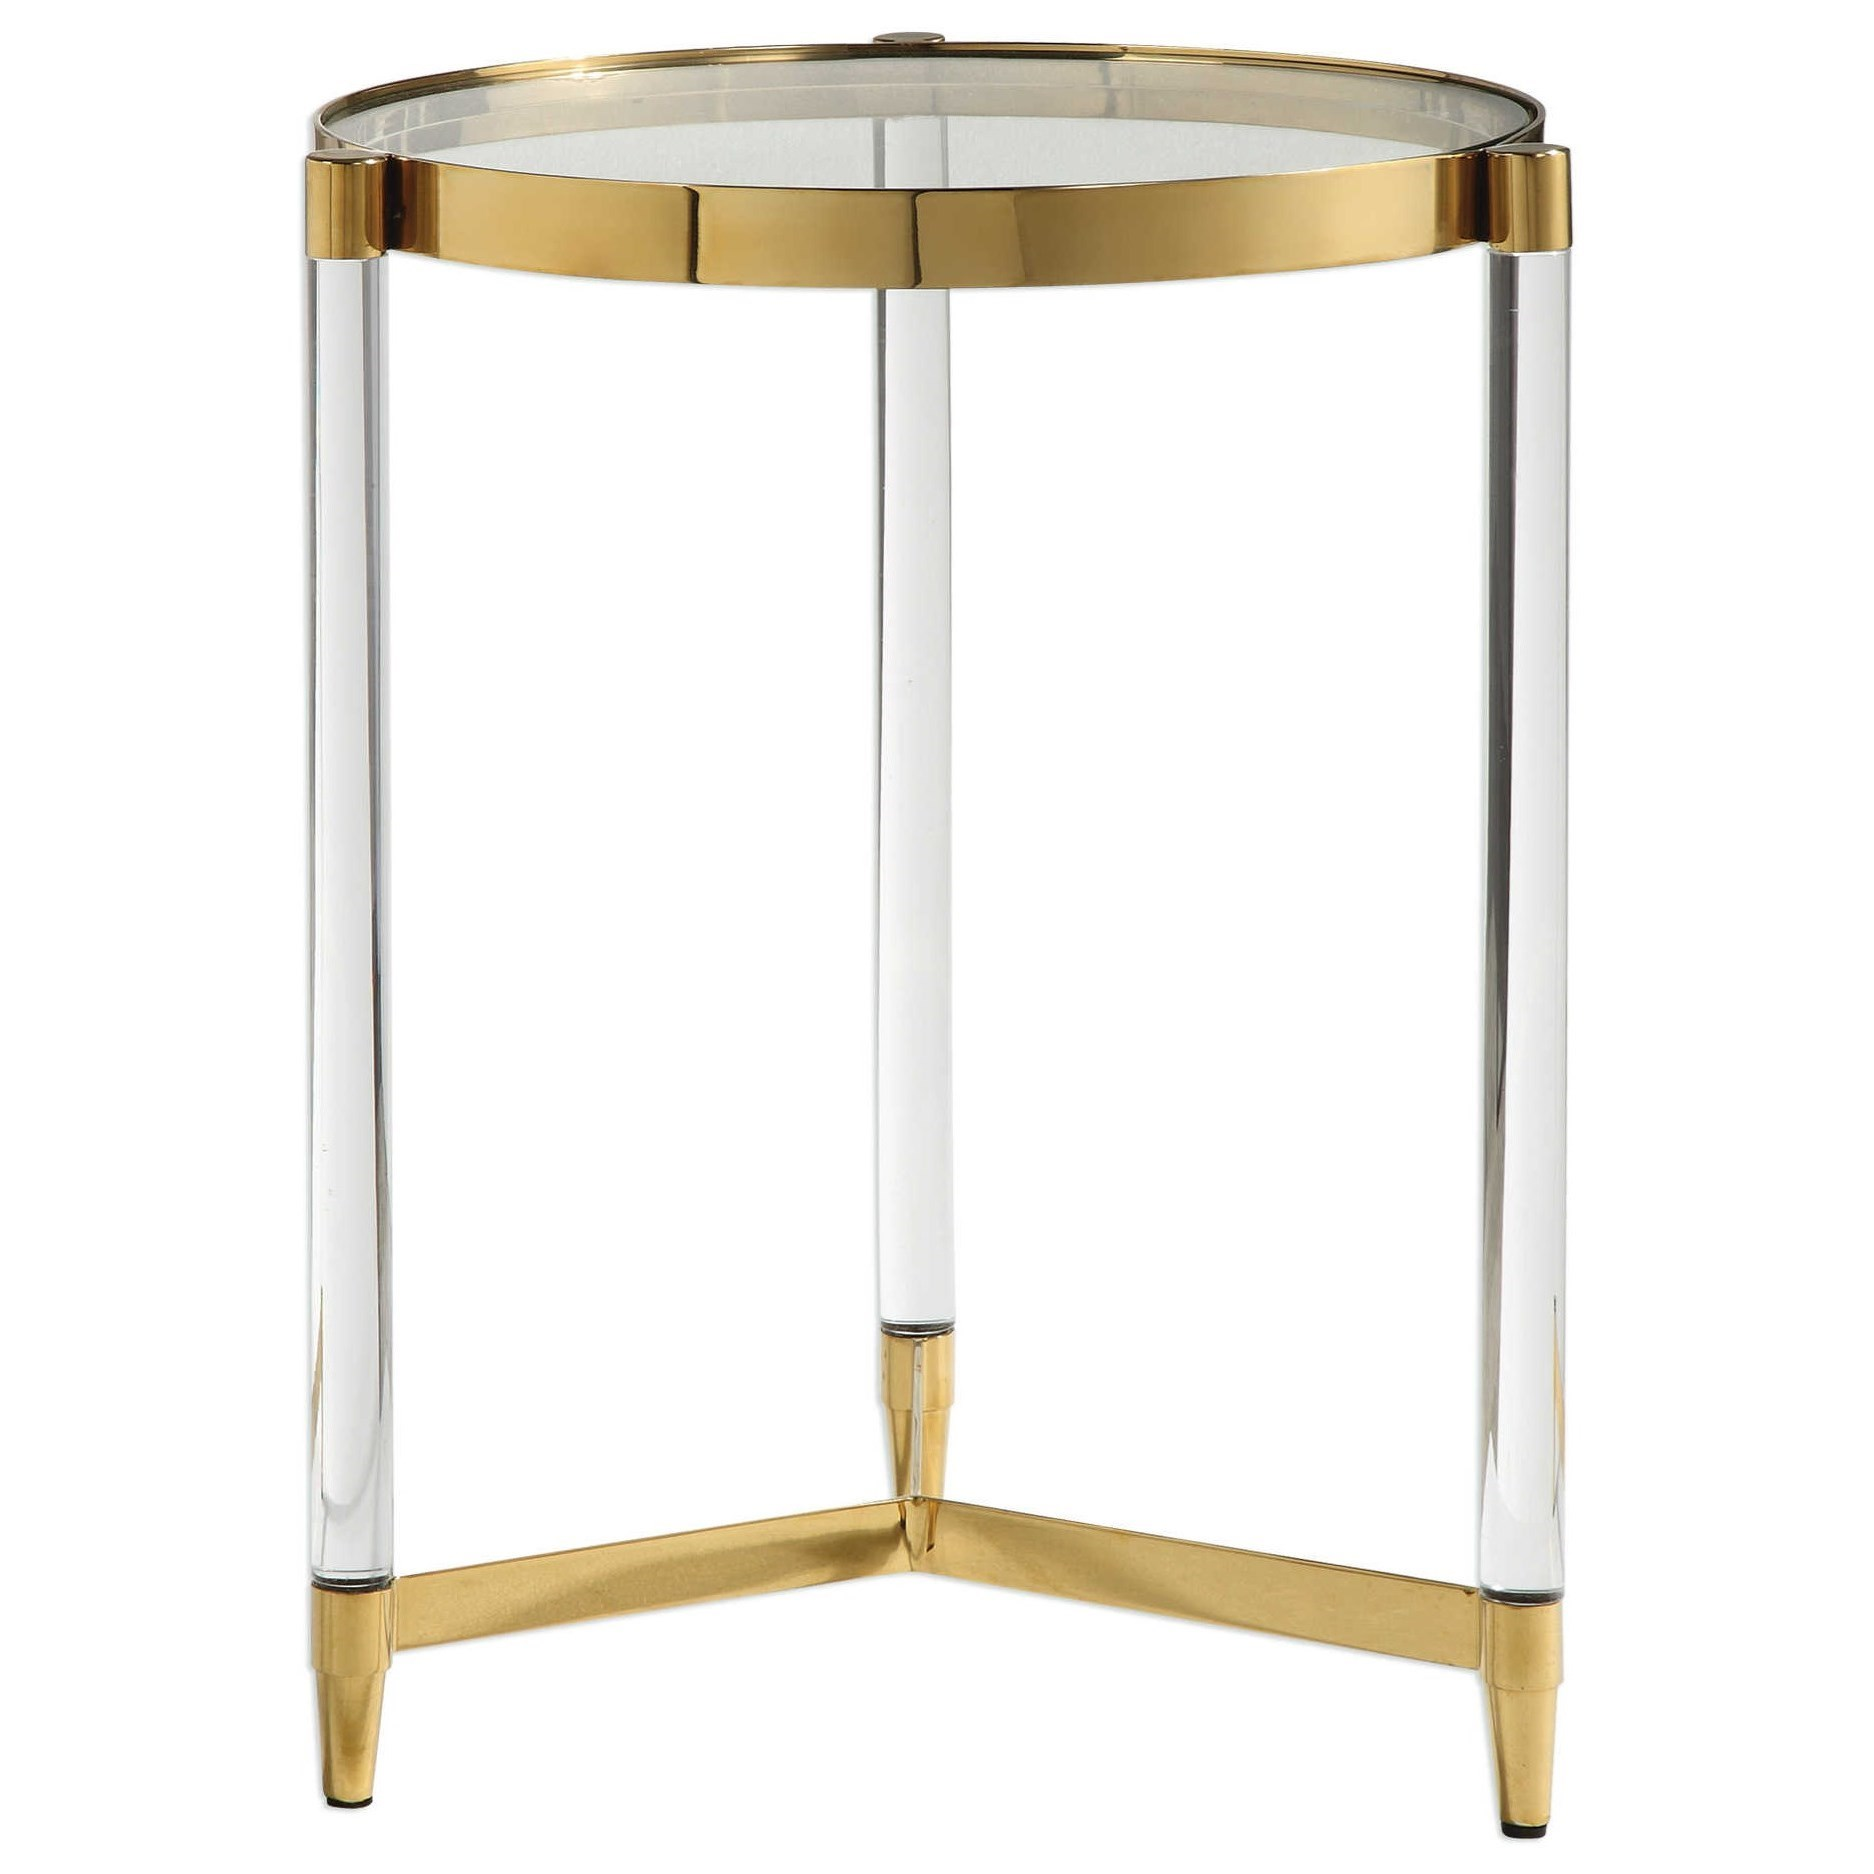 Accent Furniture - Occasional Tables Kellen Glass Accent Table by Uttermost at Goffena Furniture & Mattress Center